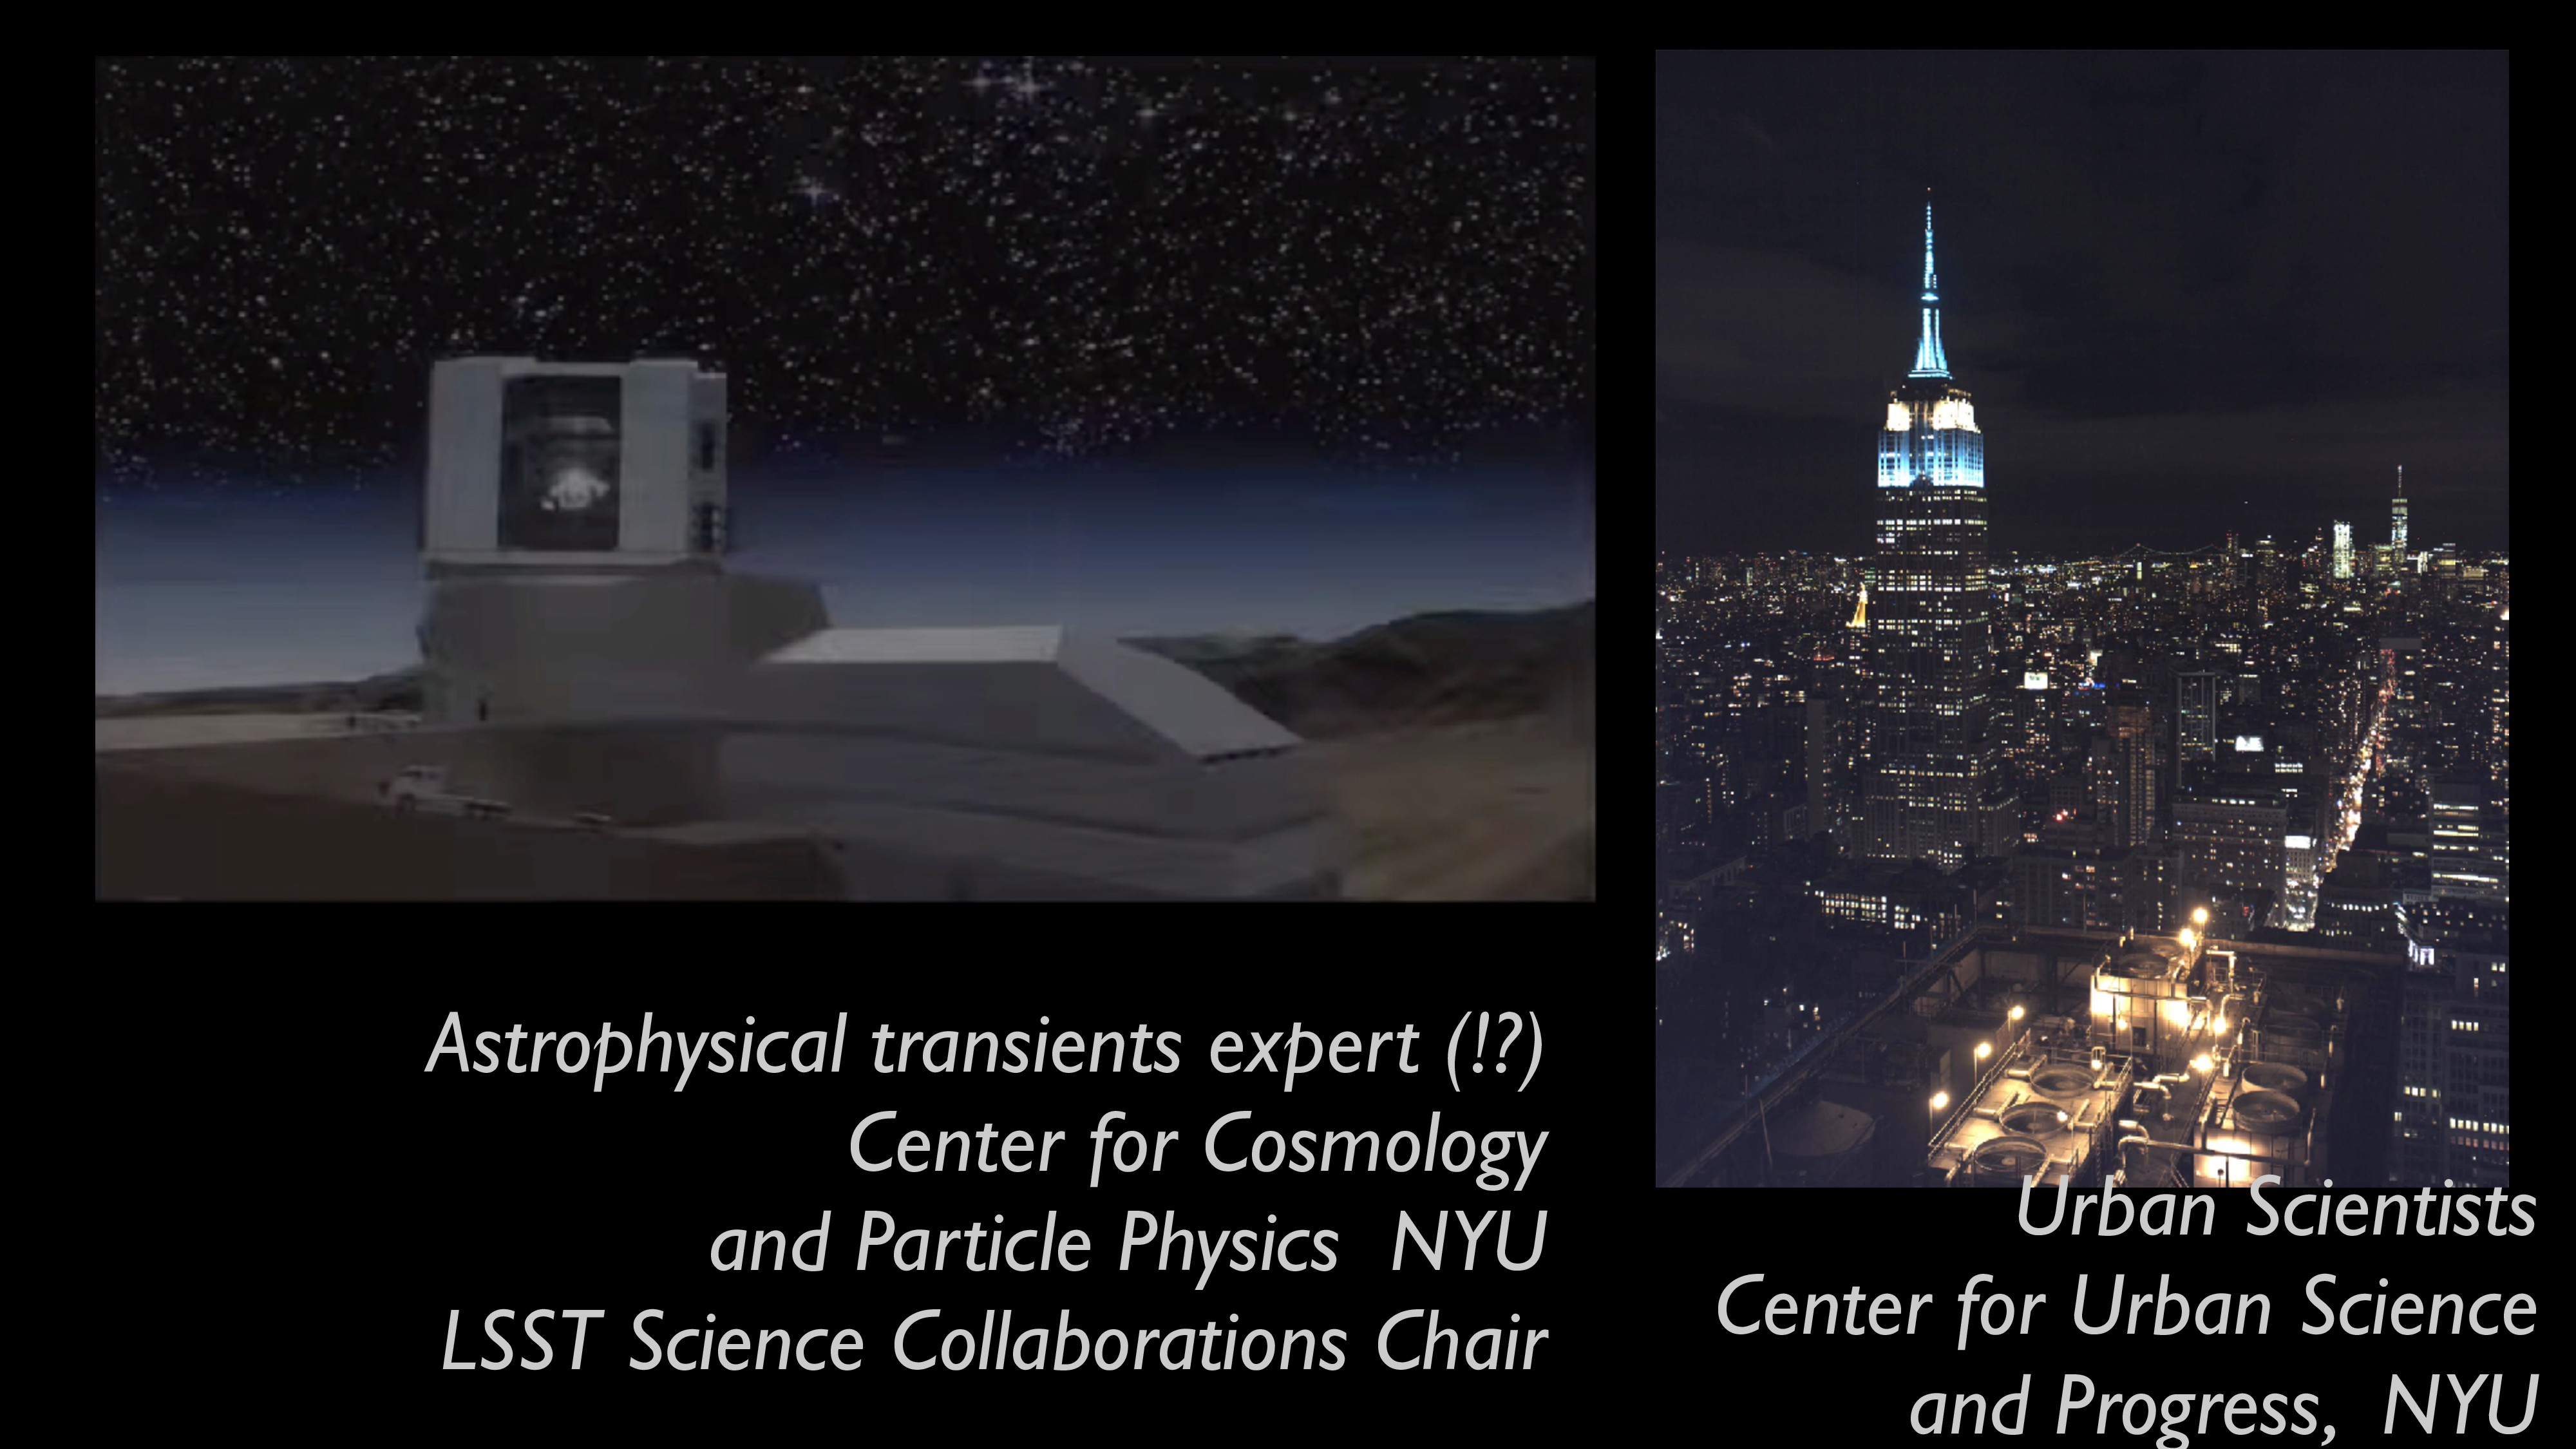 Urban Scientists Center for Urban Science and P...